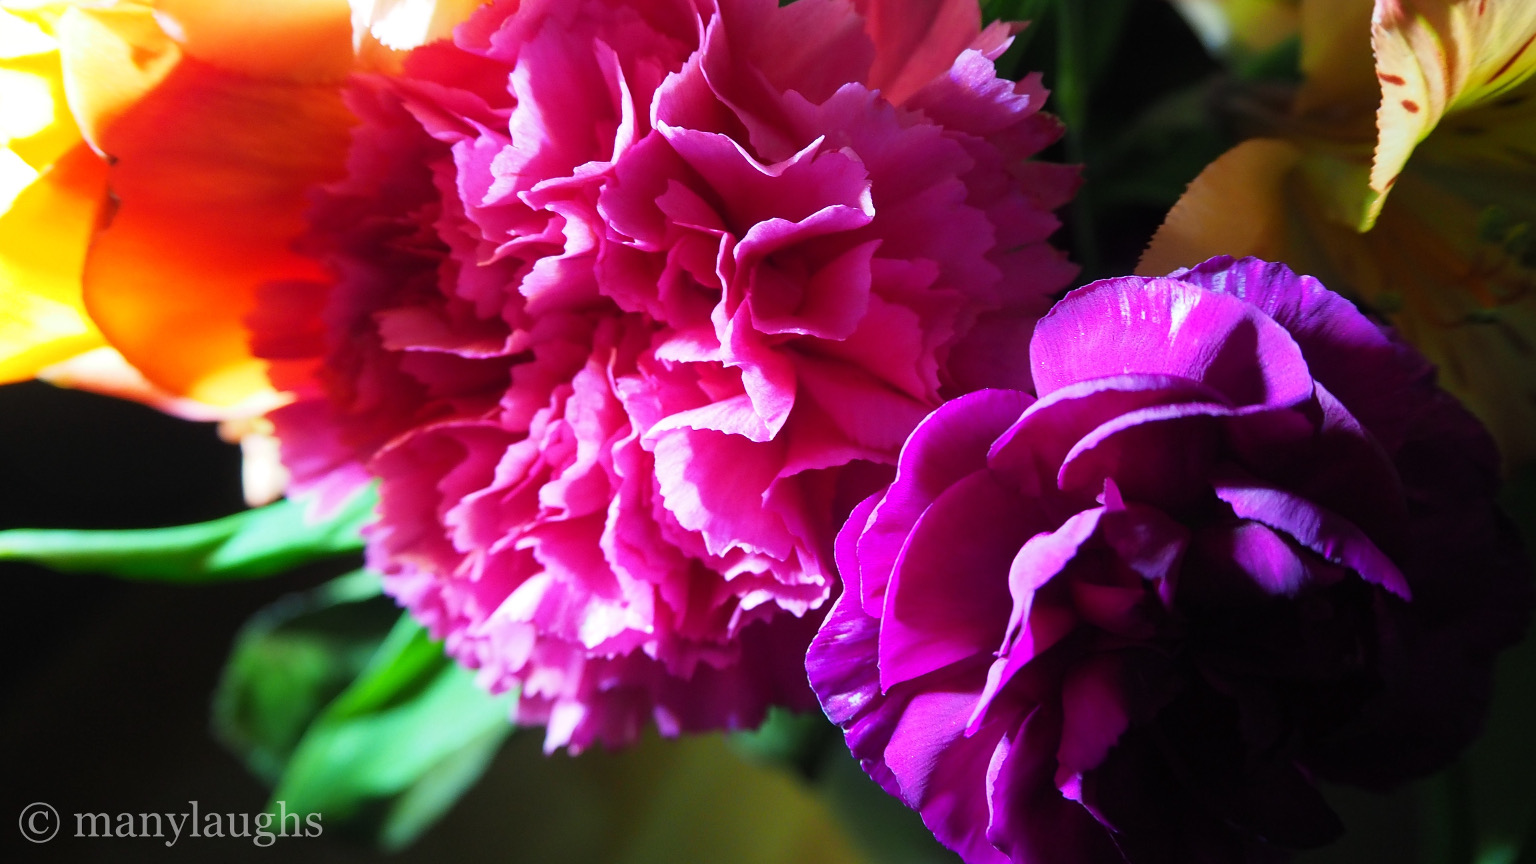 Colorful flowers – manylaughs